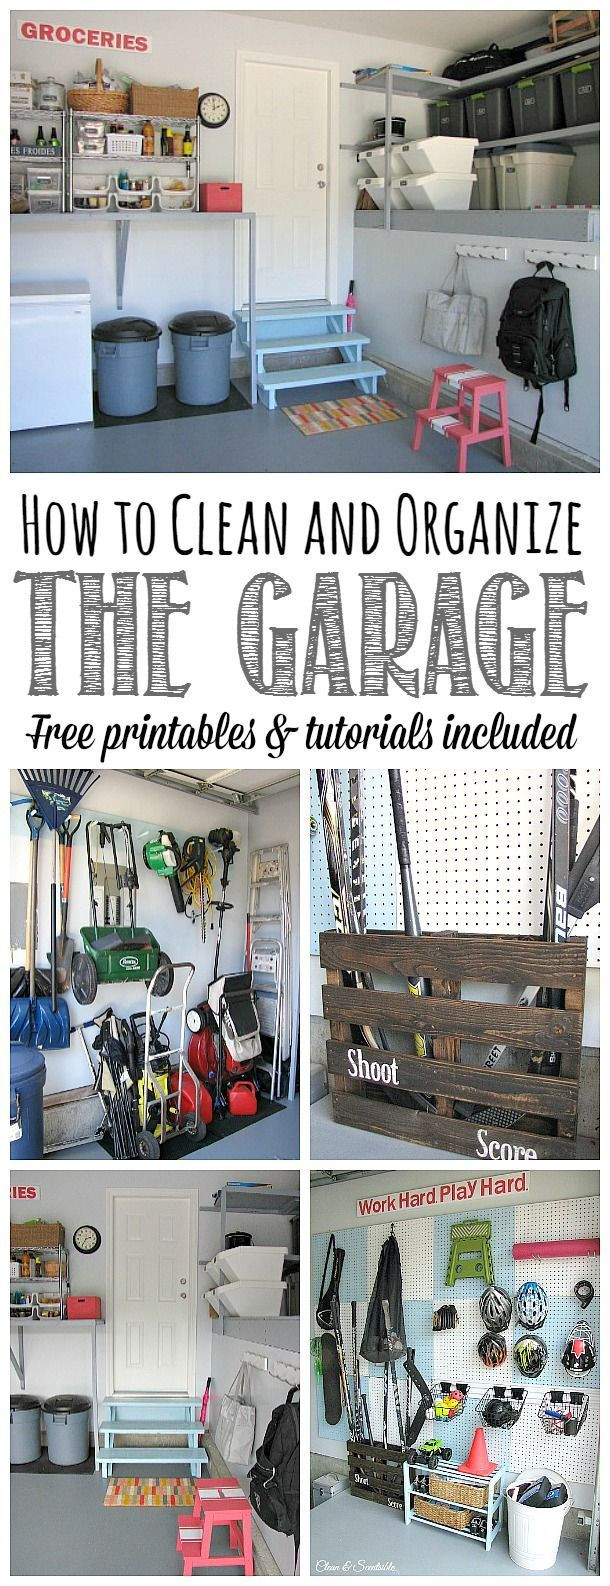 How to Clean and Organize the Garage - Everything you need to know to get things cleaned and organized once and for all with free printables to help keep you on track.